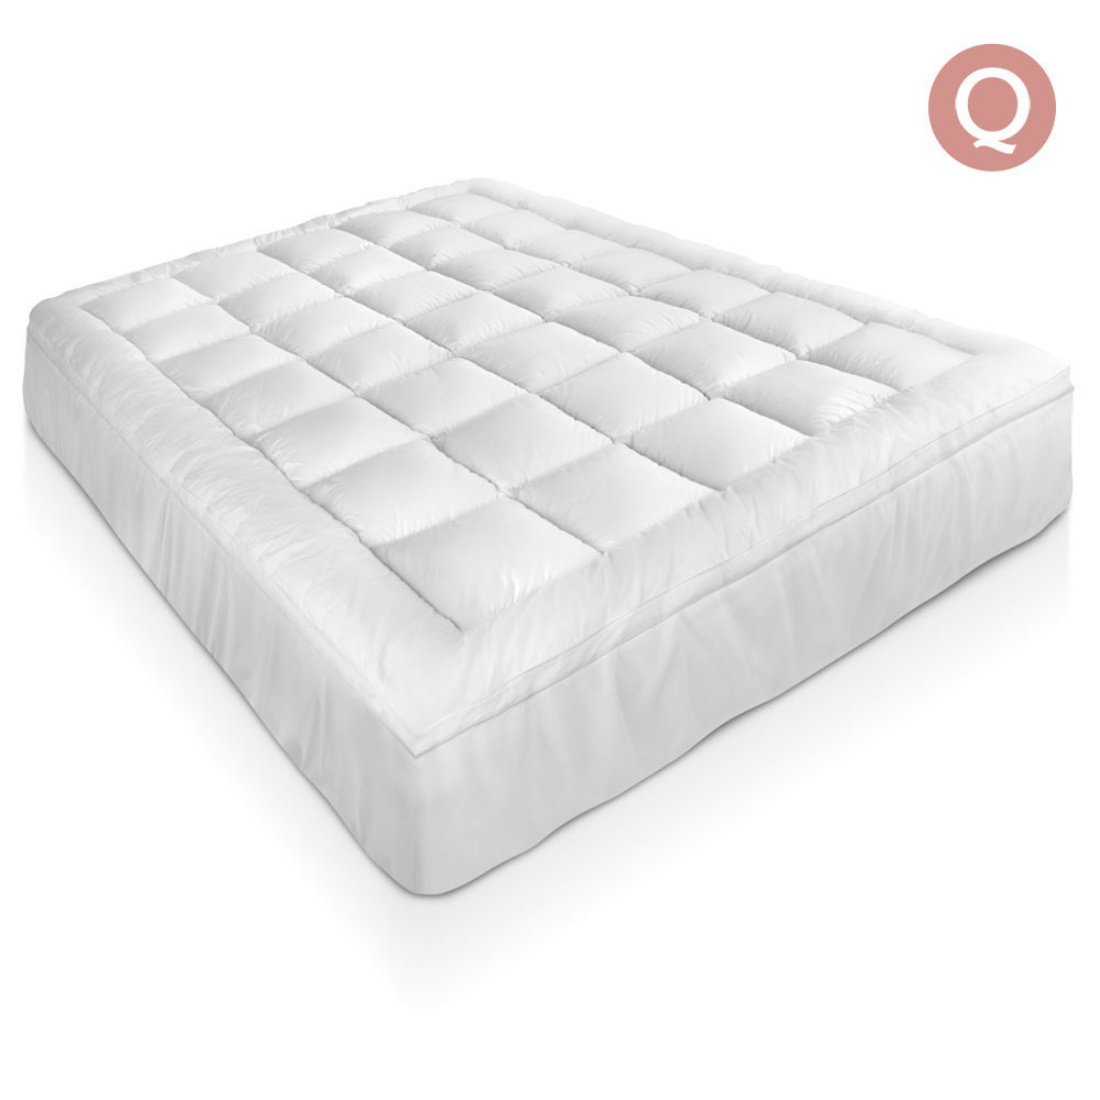 Bamboo Pillowtop Mattress Topper 5cm - Queen